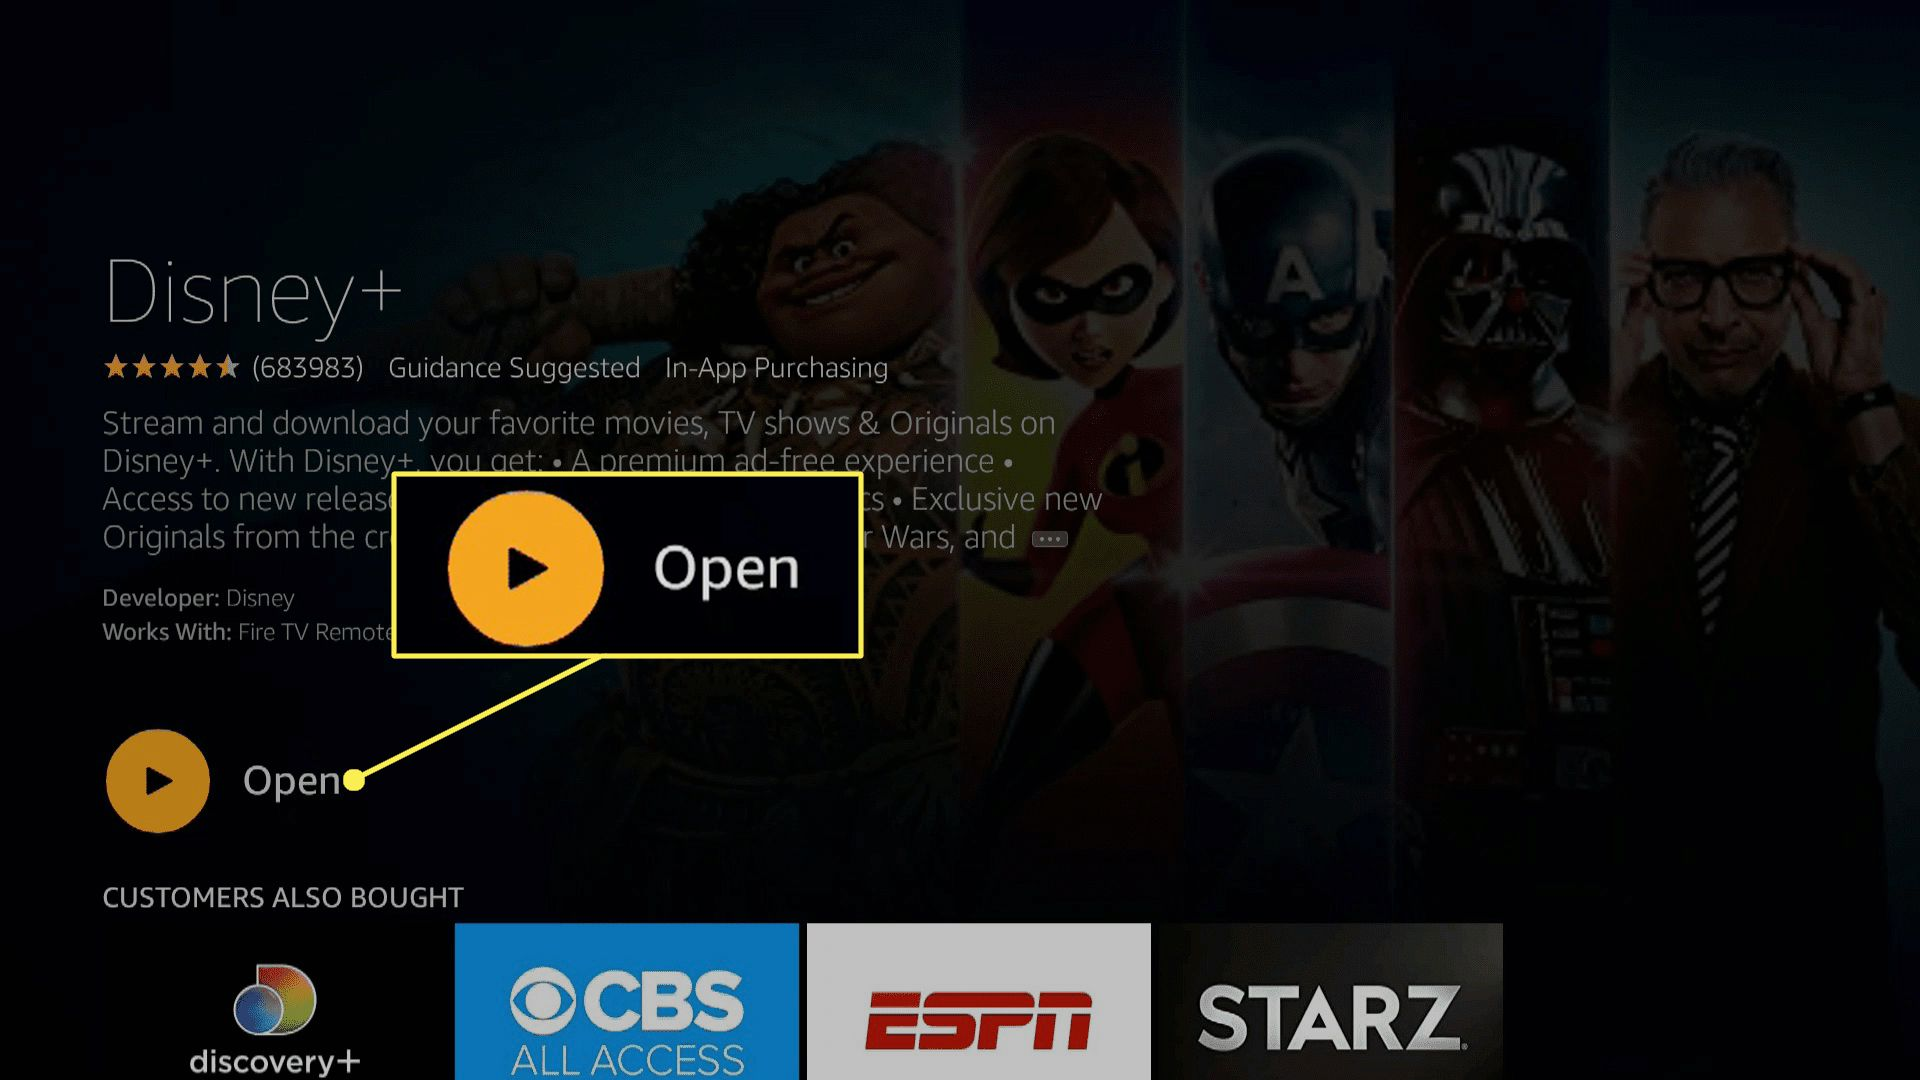 Disney Plus on Fire TV with Open highlighted.